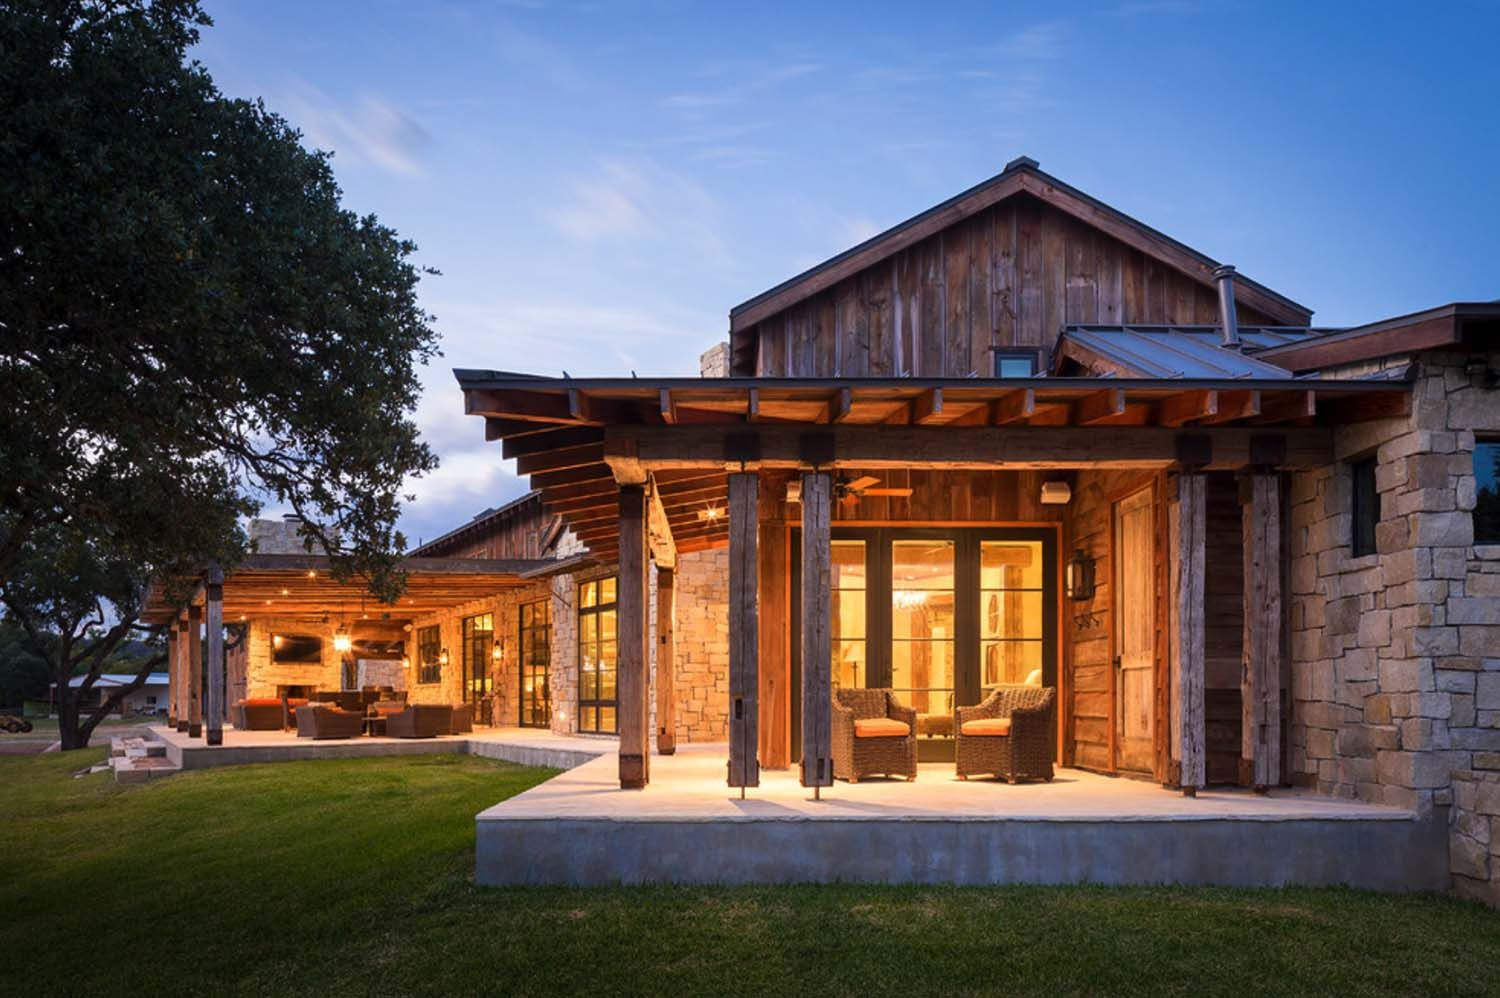 Modern rustic barn style retreat in texas hill country Modern rustic farmhouse plans